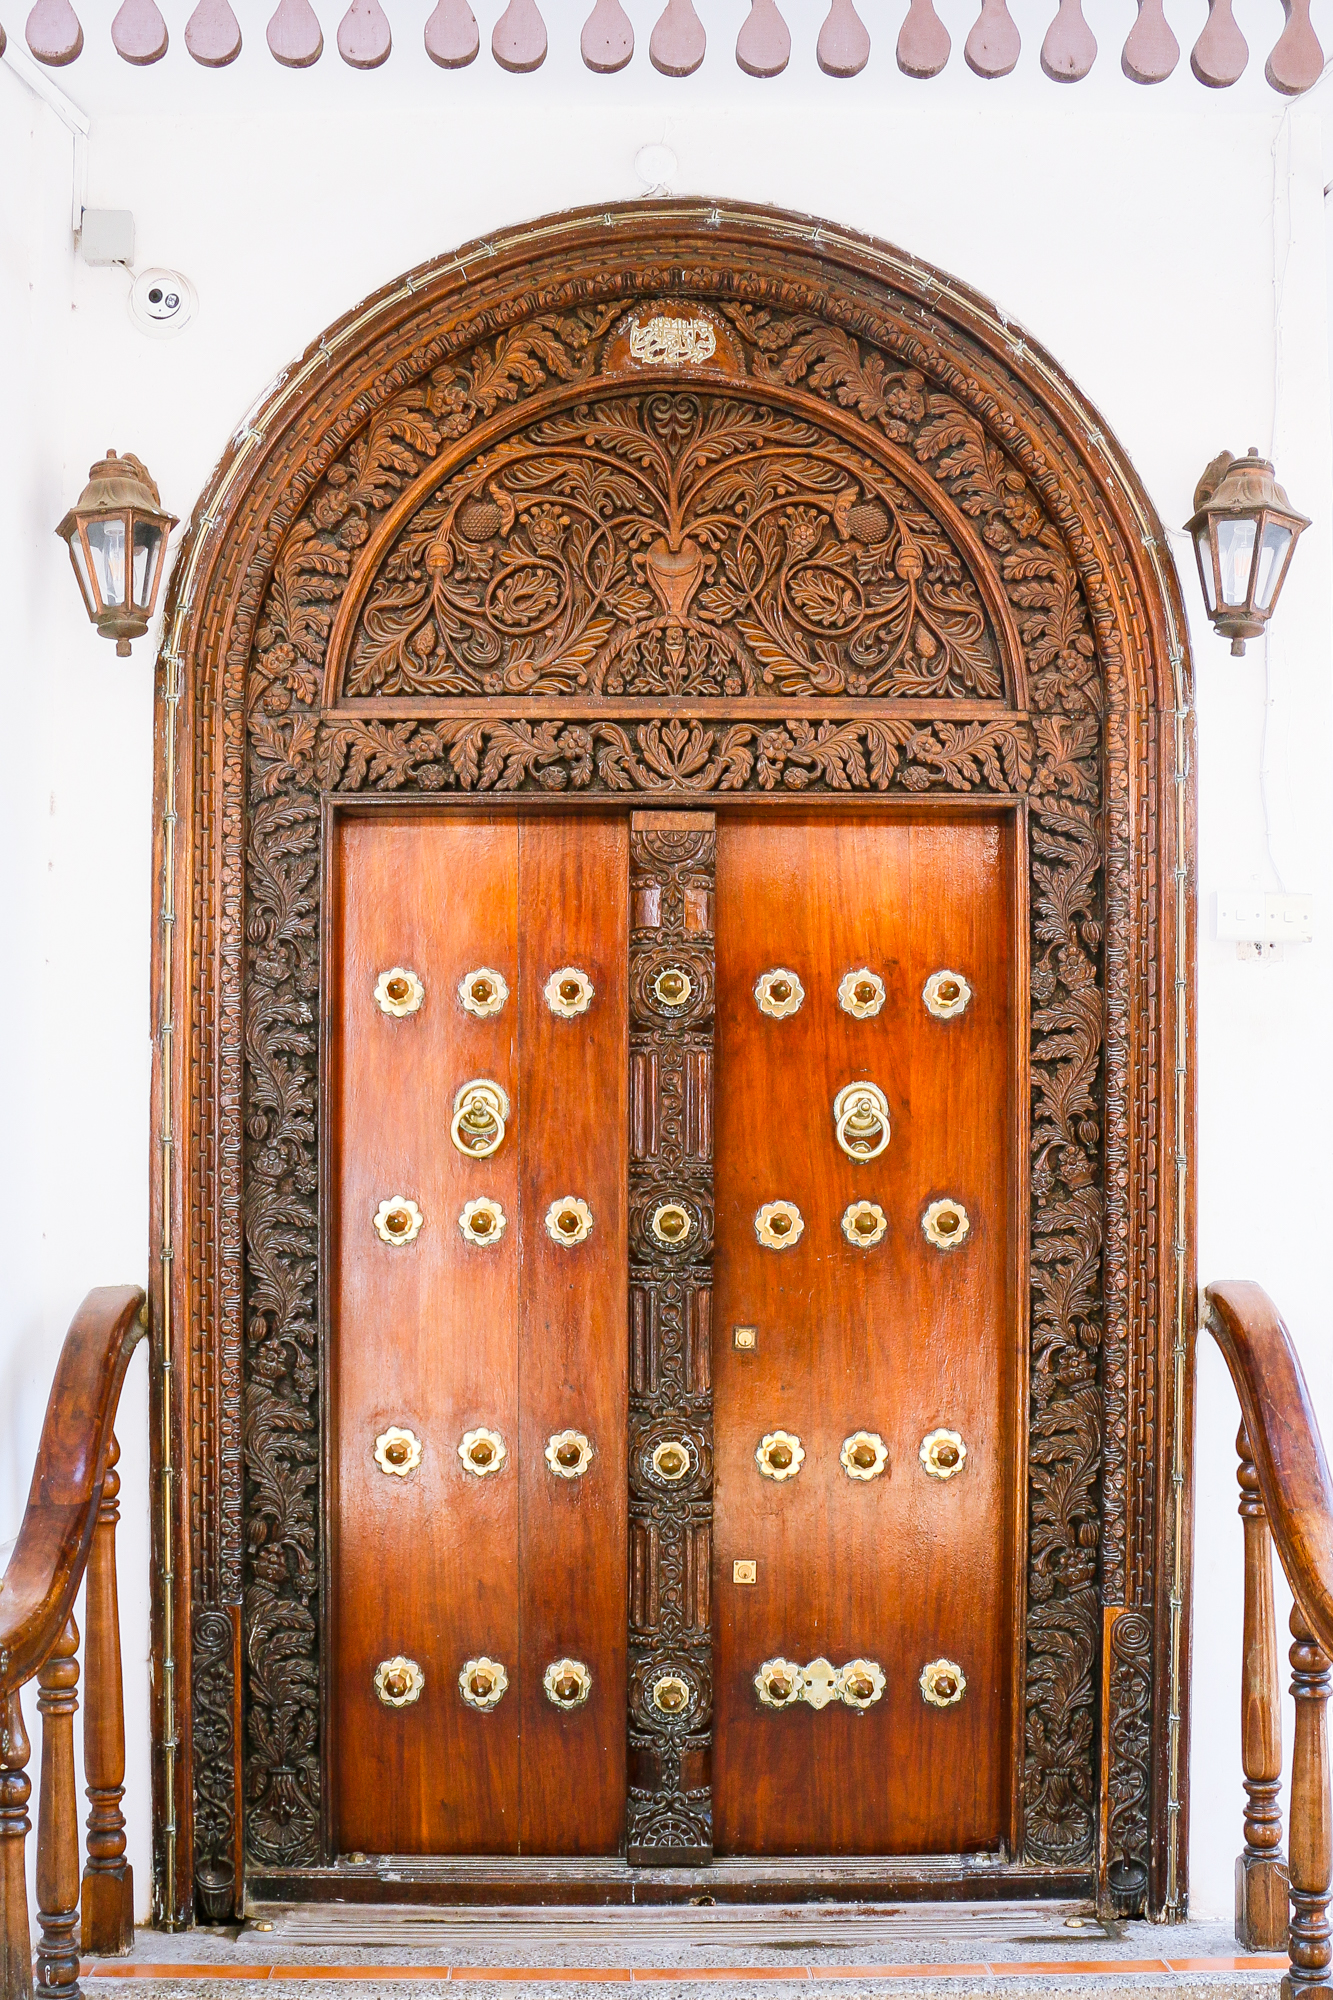 One of the many carved doors Stone Town Zanzibar is known for